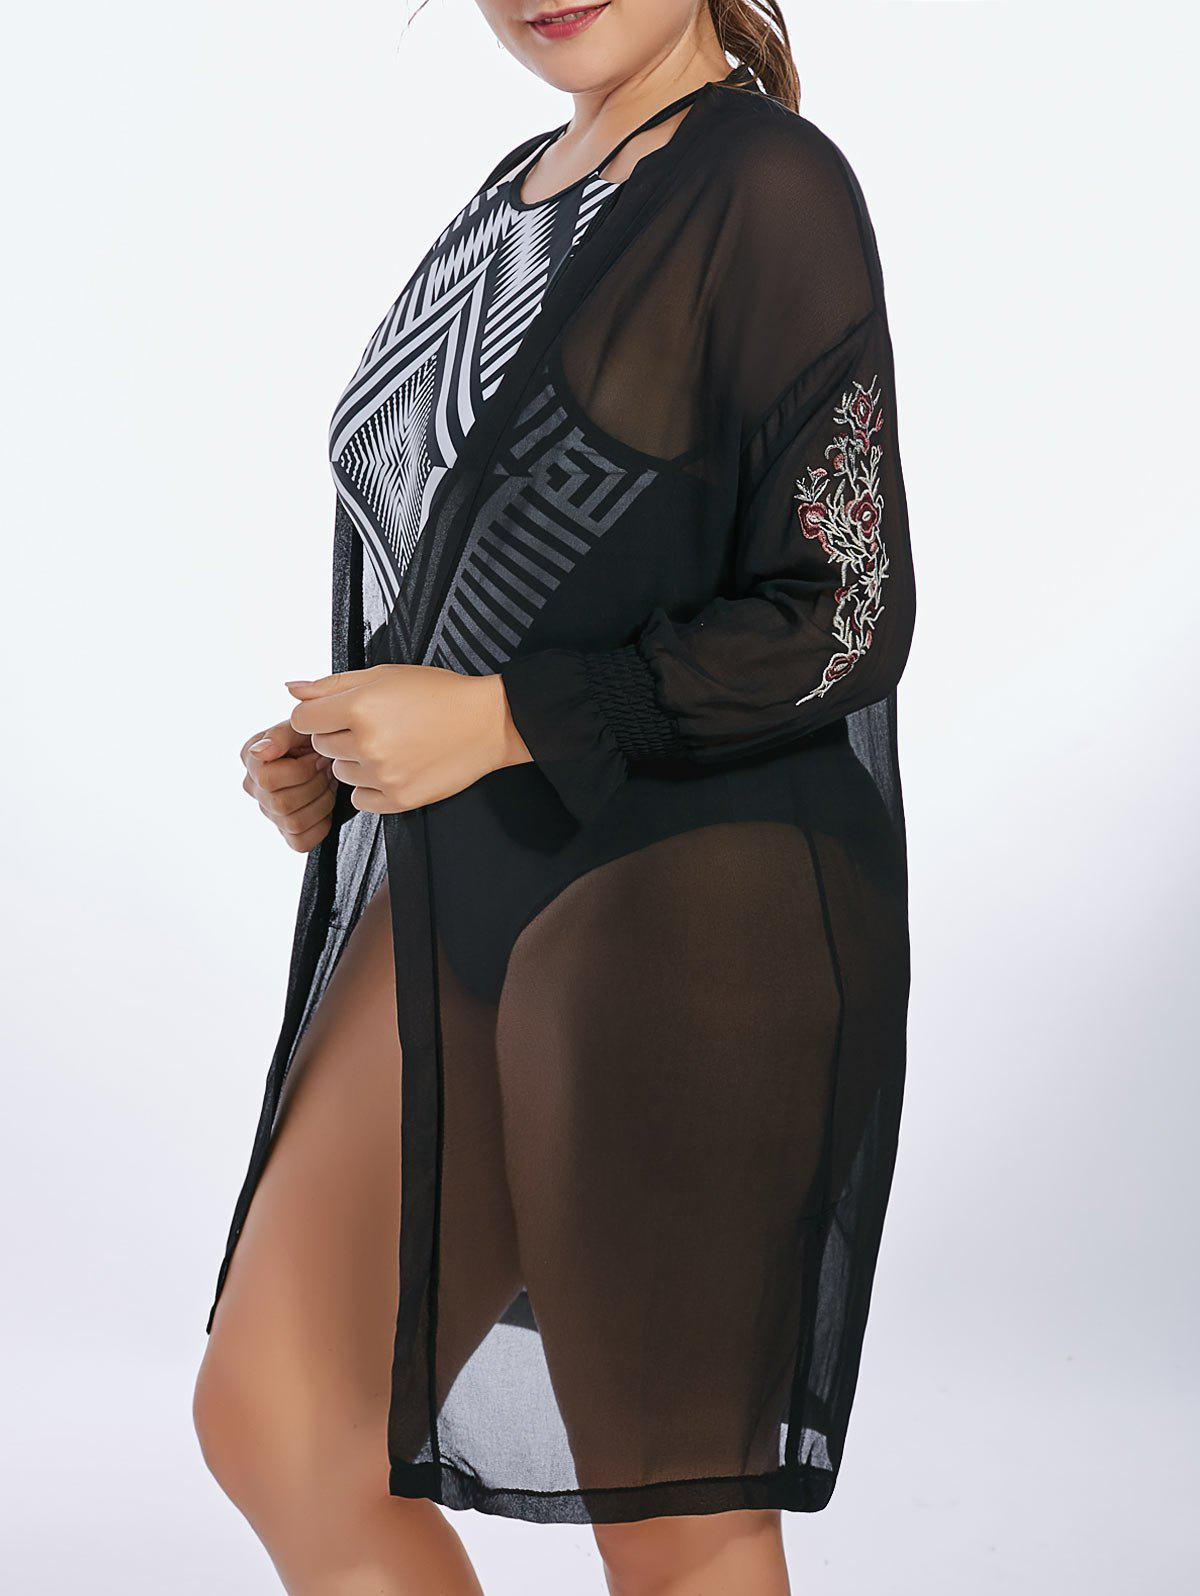 Plus Size Chiffon Sheer Long Sleeve Cover Up Kimono butterfly sheer plus size crochet cover up